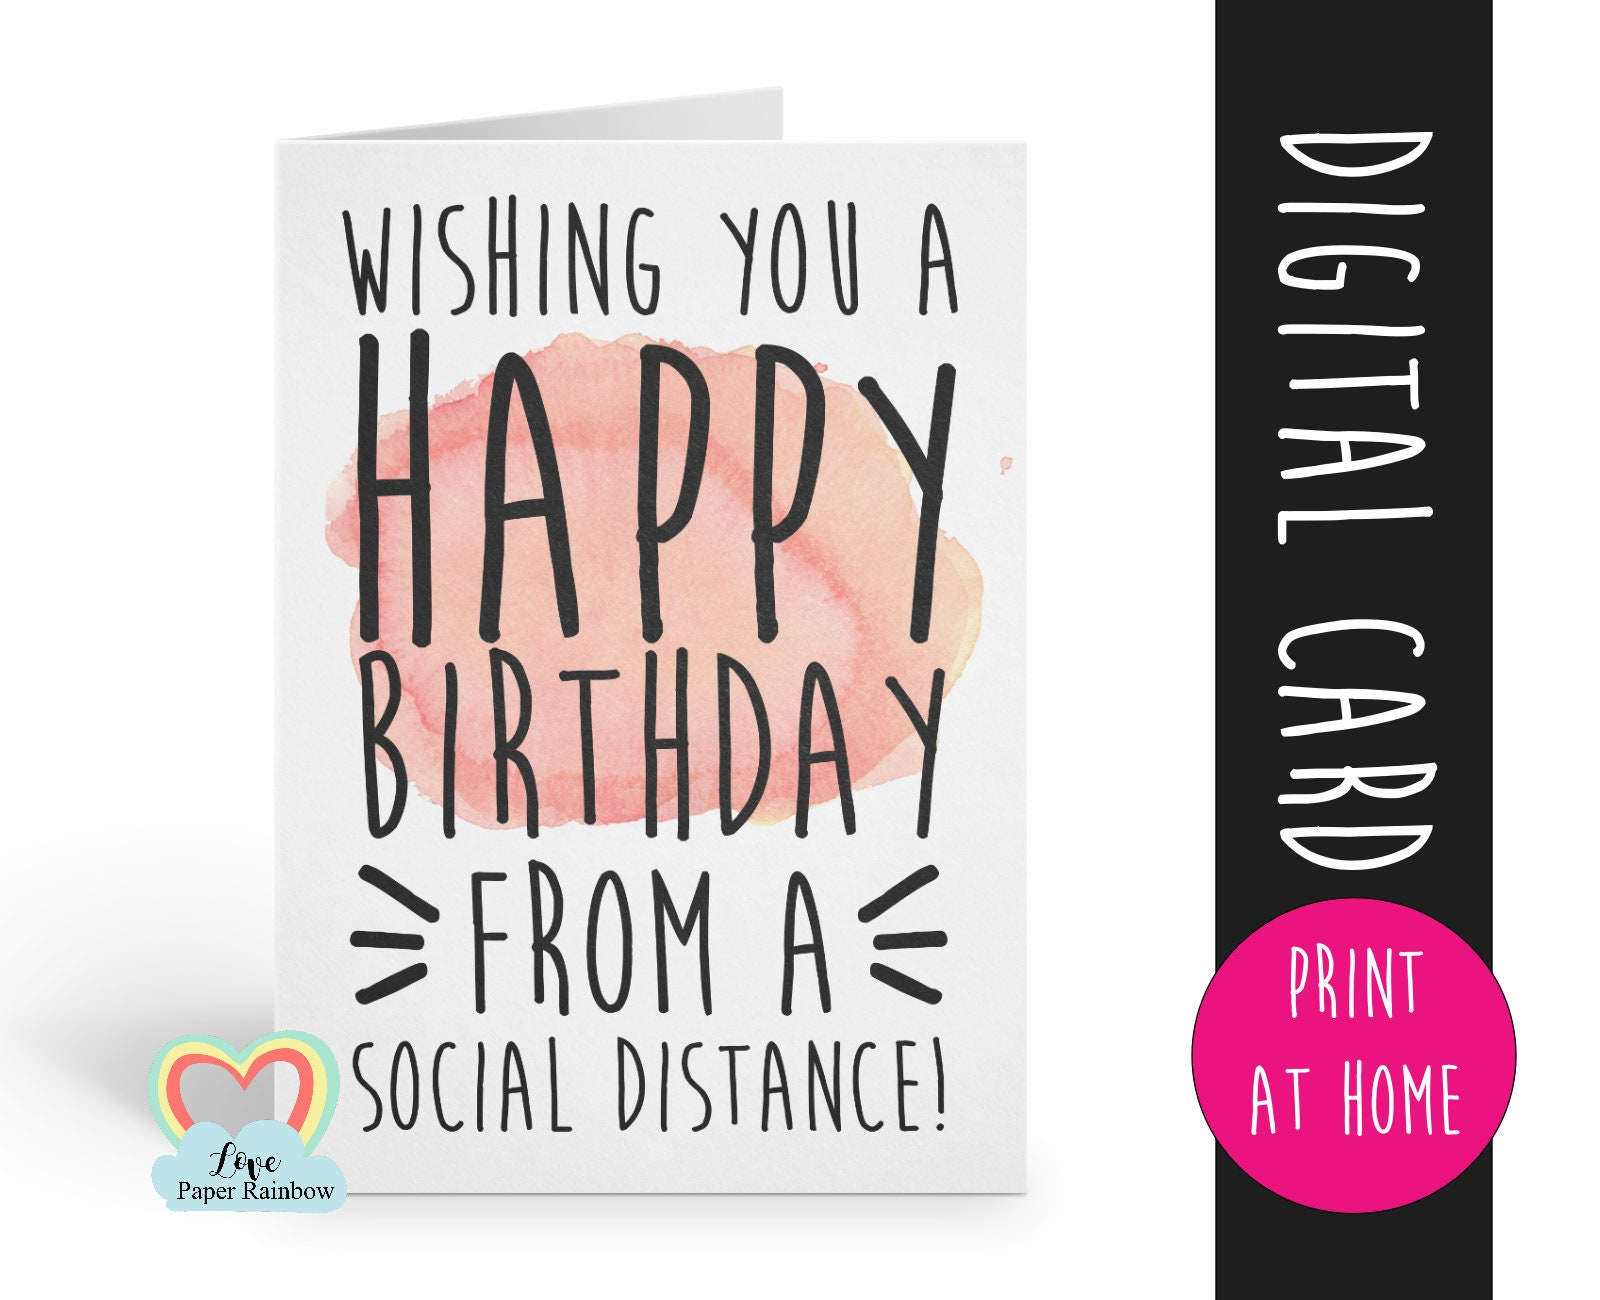 Swell Printable Birthday Card Social Distance Instant Download Funny Social Funny Birthday Cards Online Elaedamsfinfo